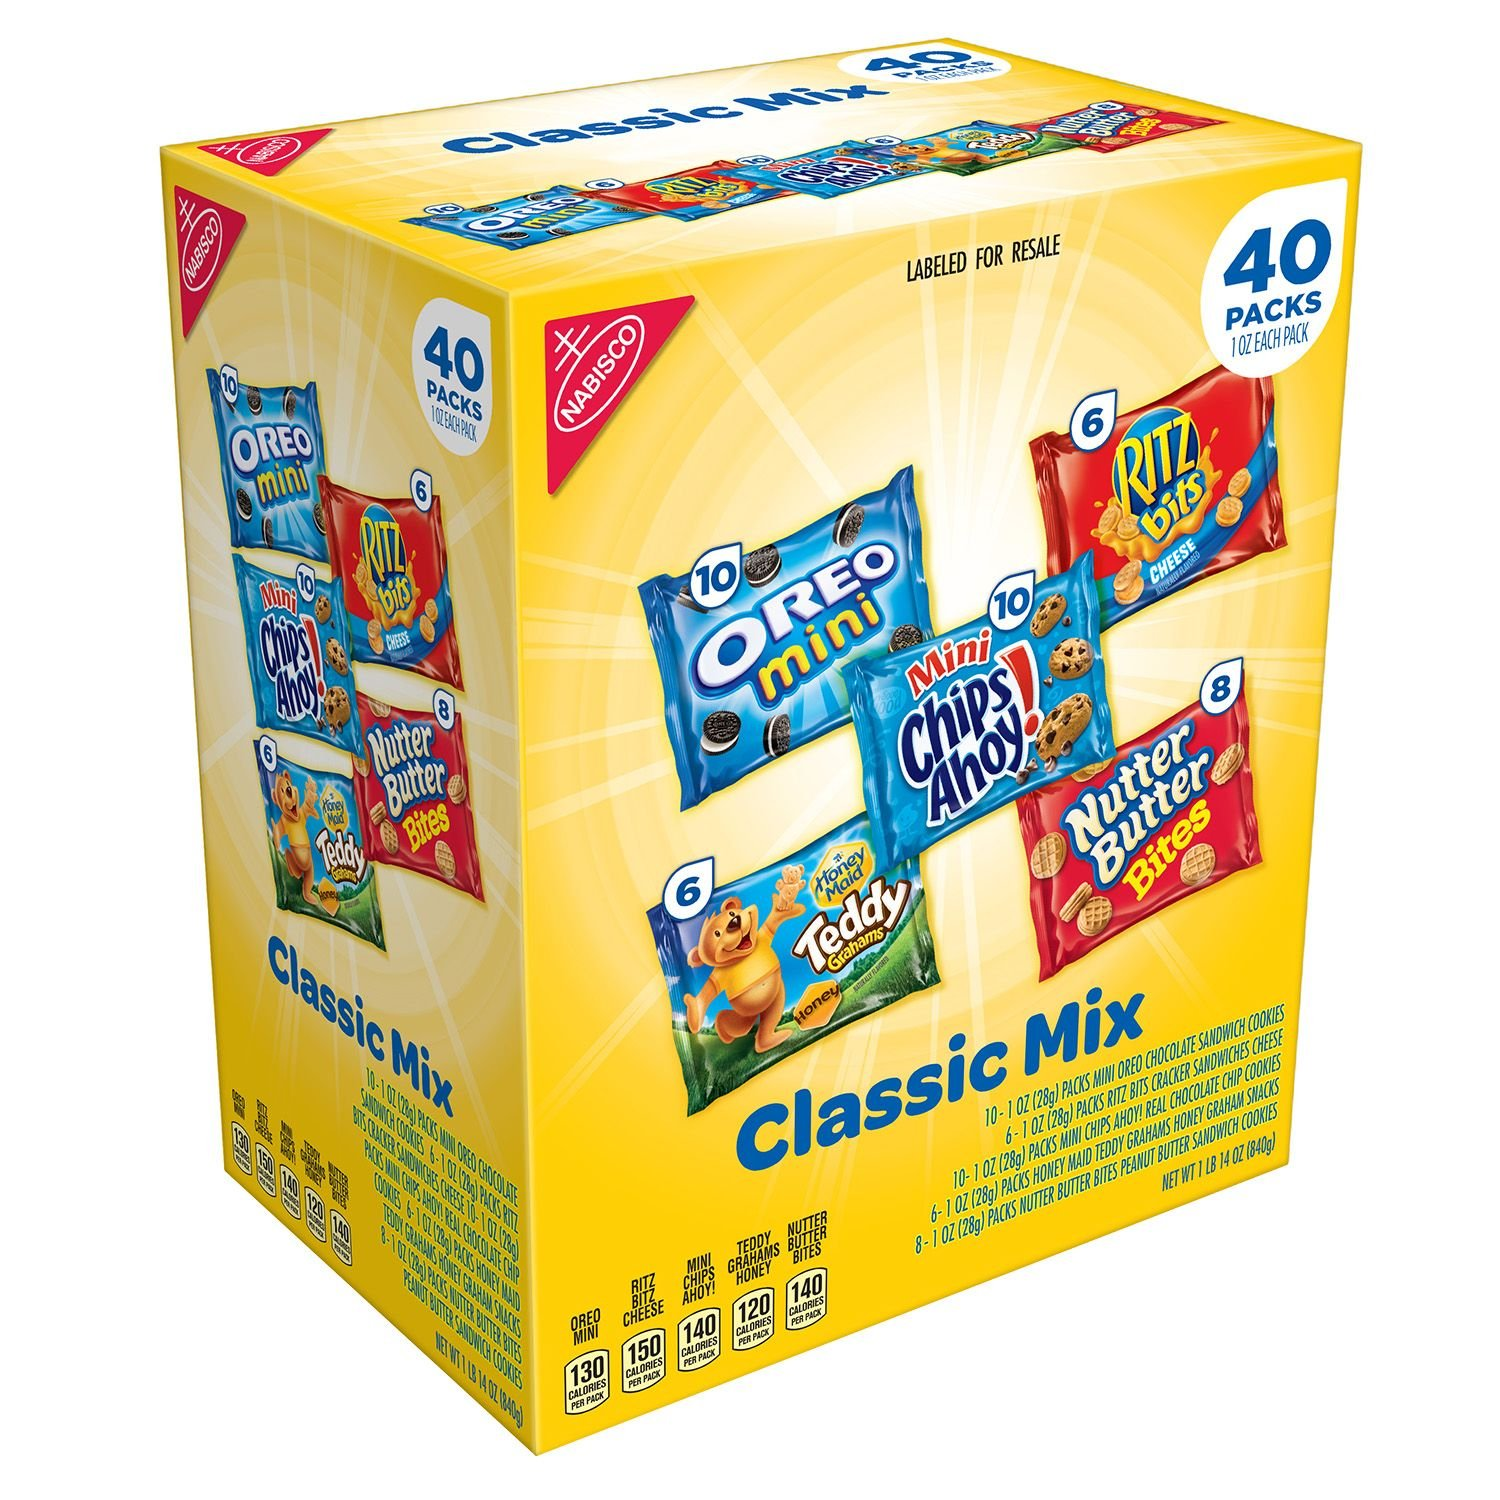 Nabisco Classic Mix Variety Pack (40 ct.) (pack of 2)